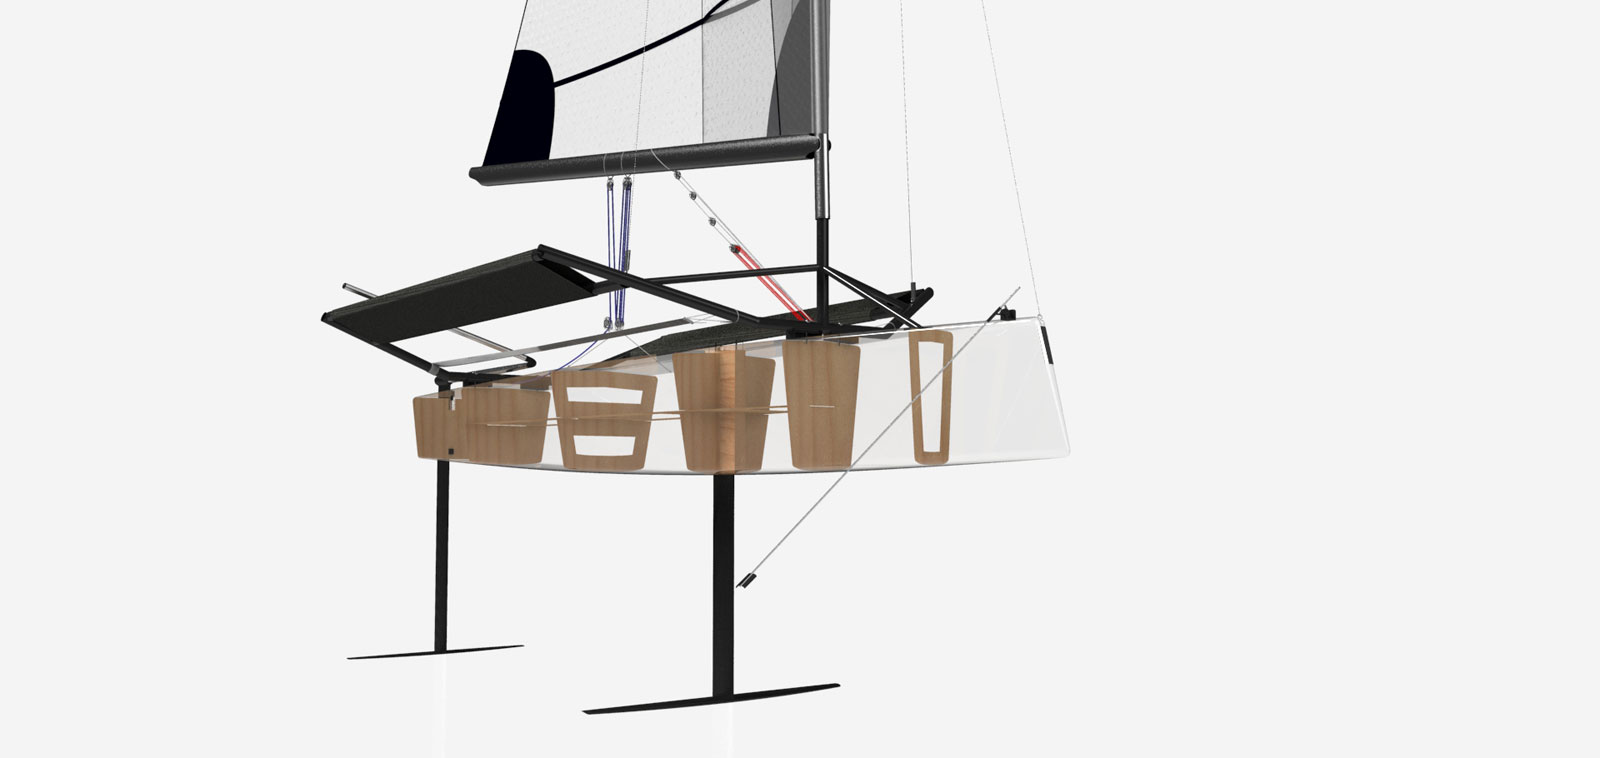 Hydrofoil Sailing Boat Prototype Structure